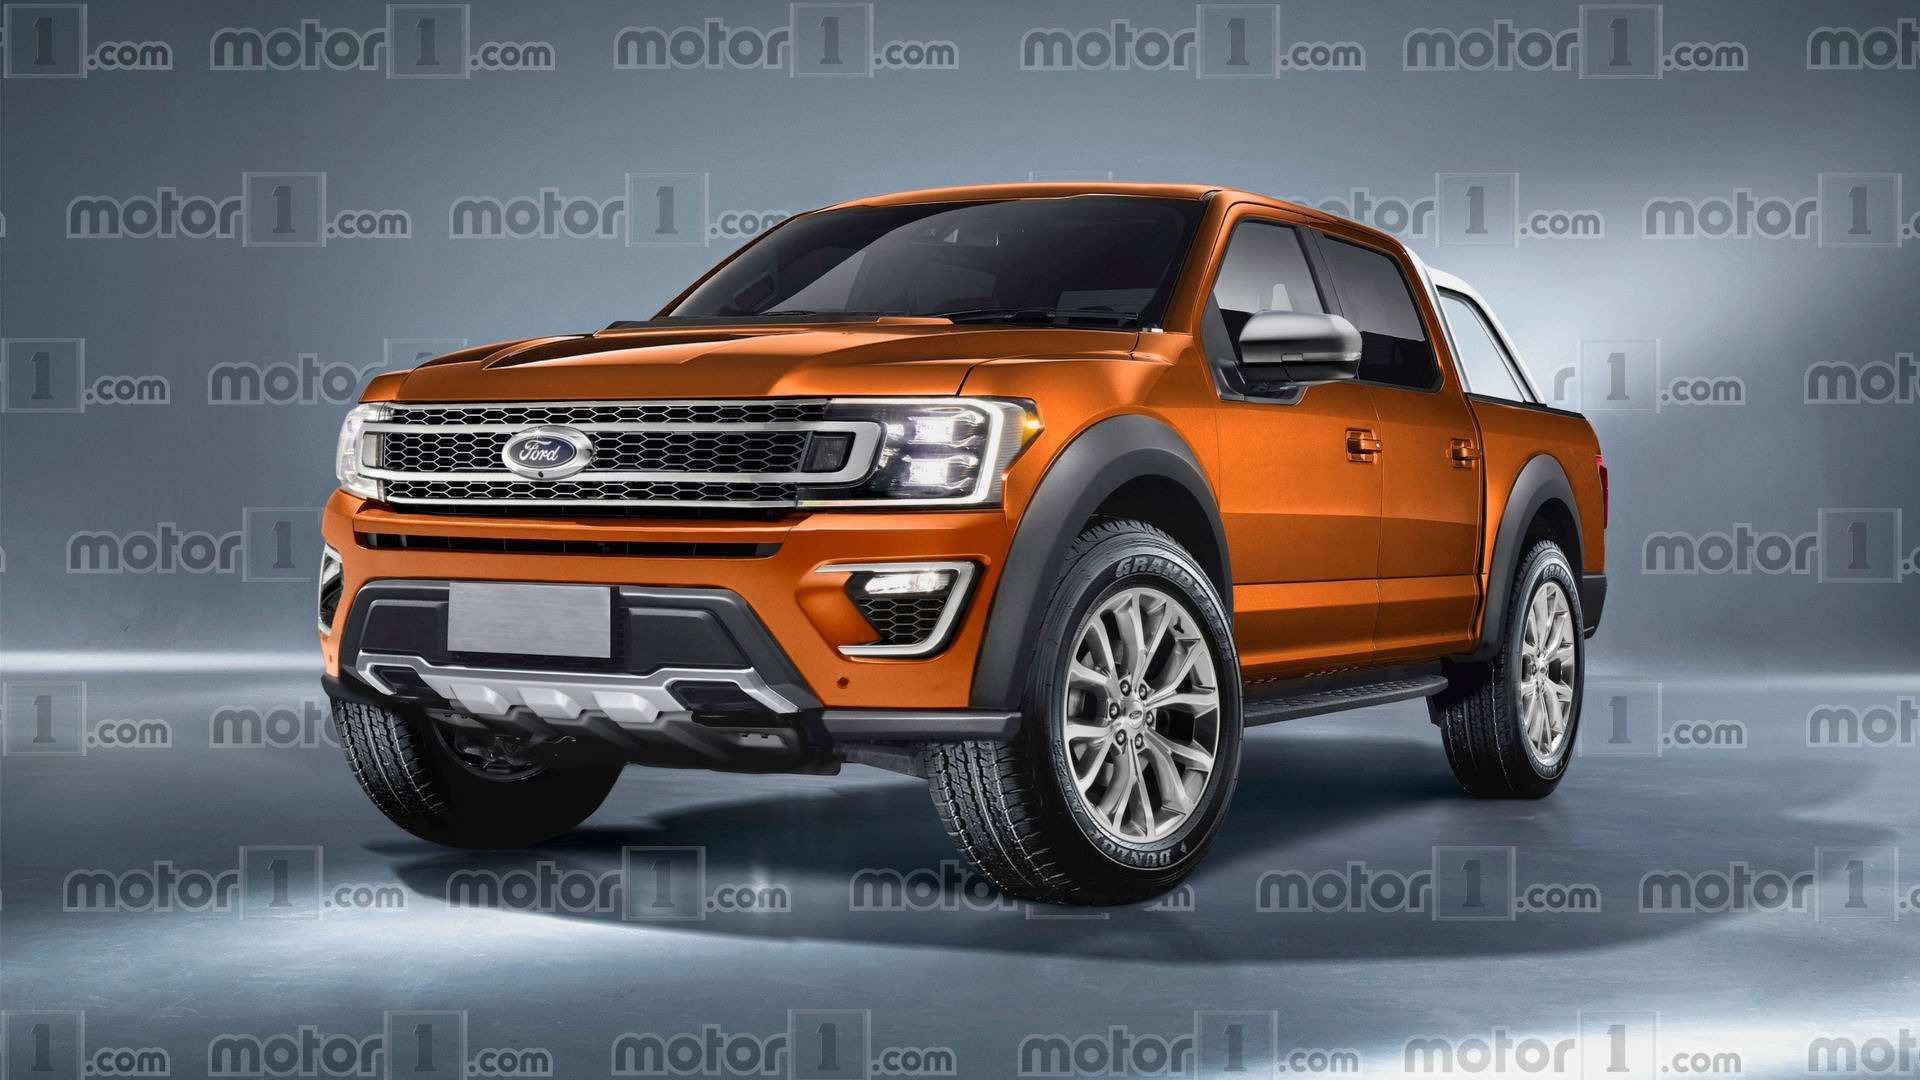 64 All New F2019 Ford Ranger Exterior